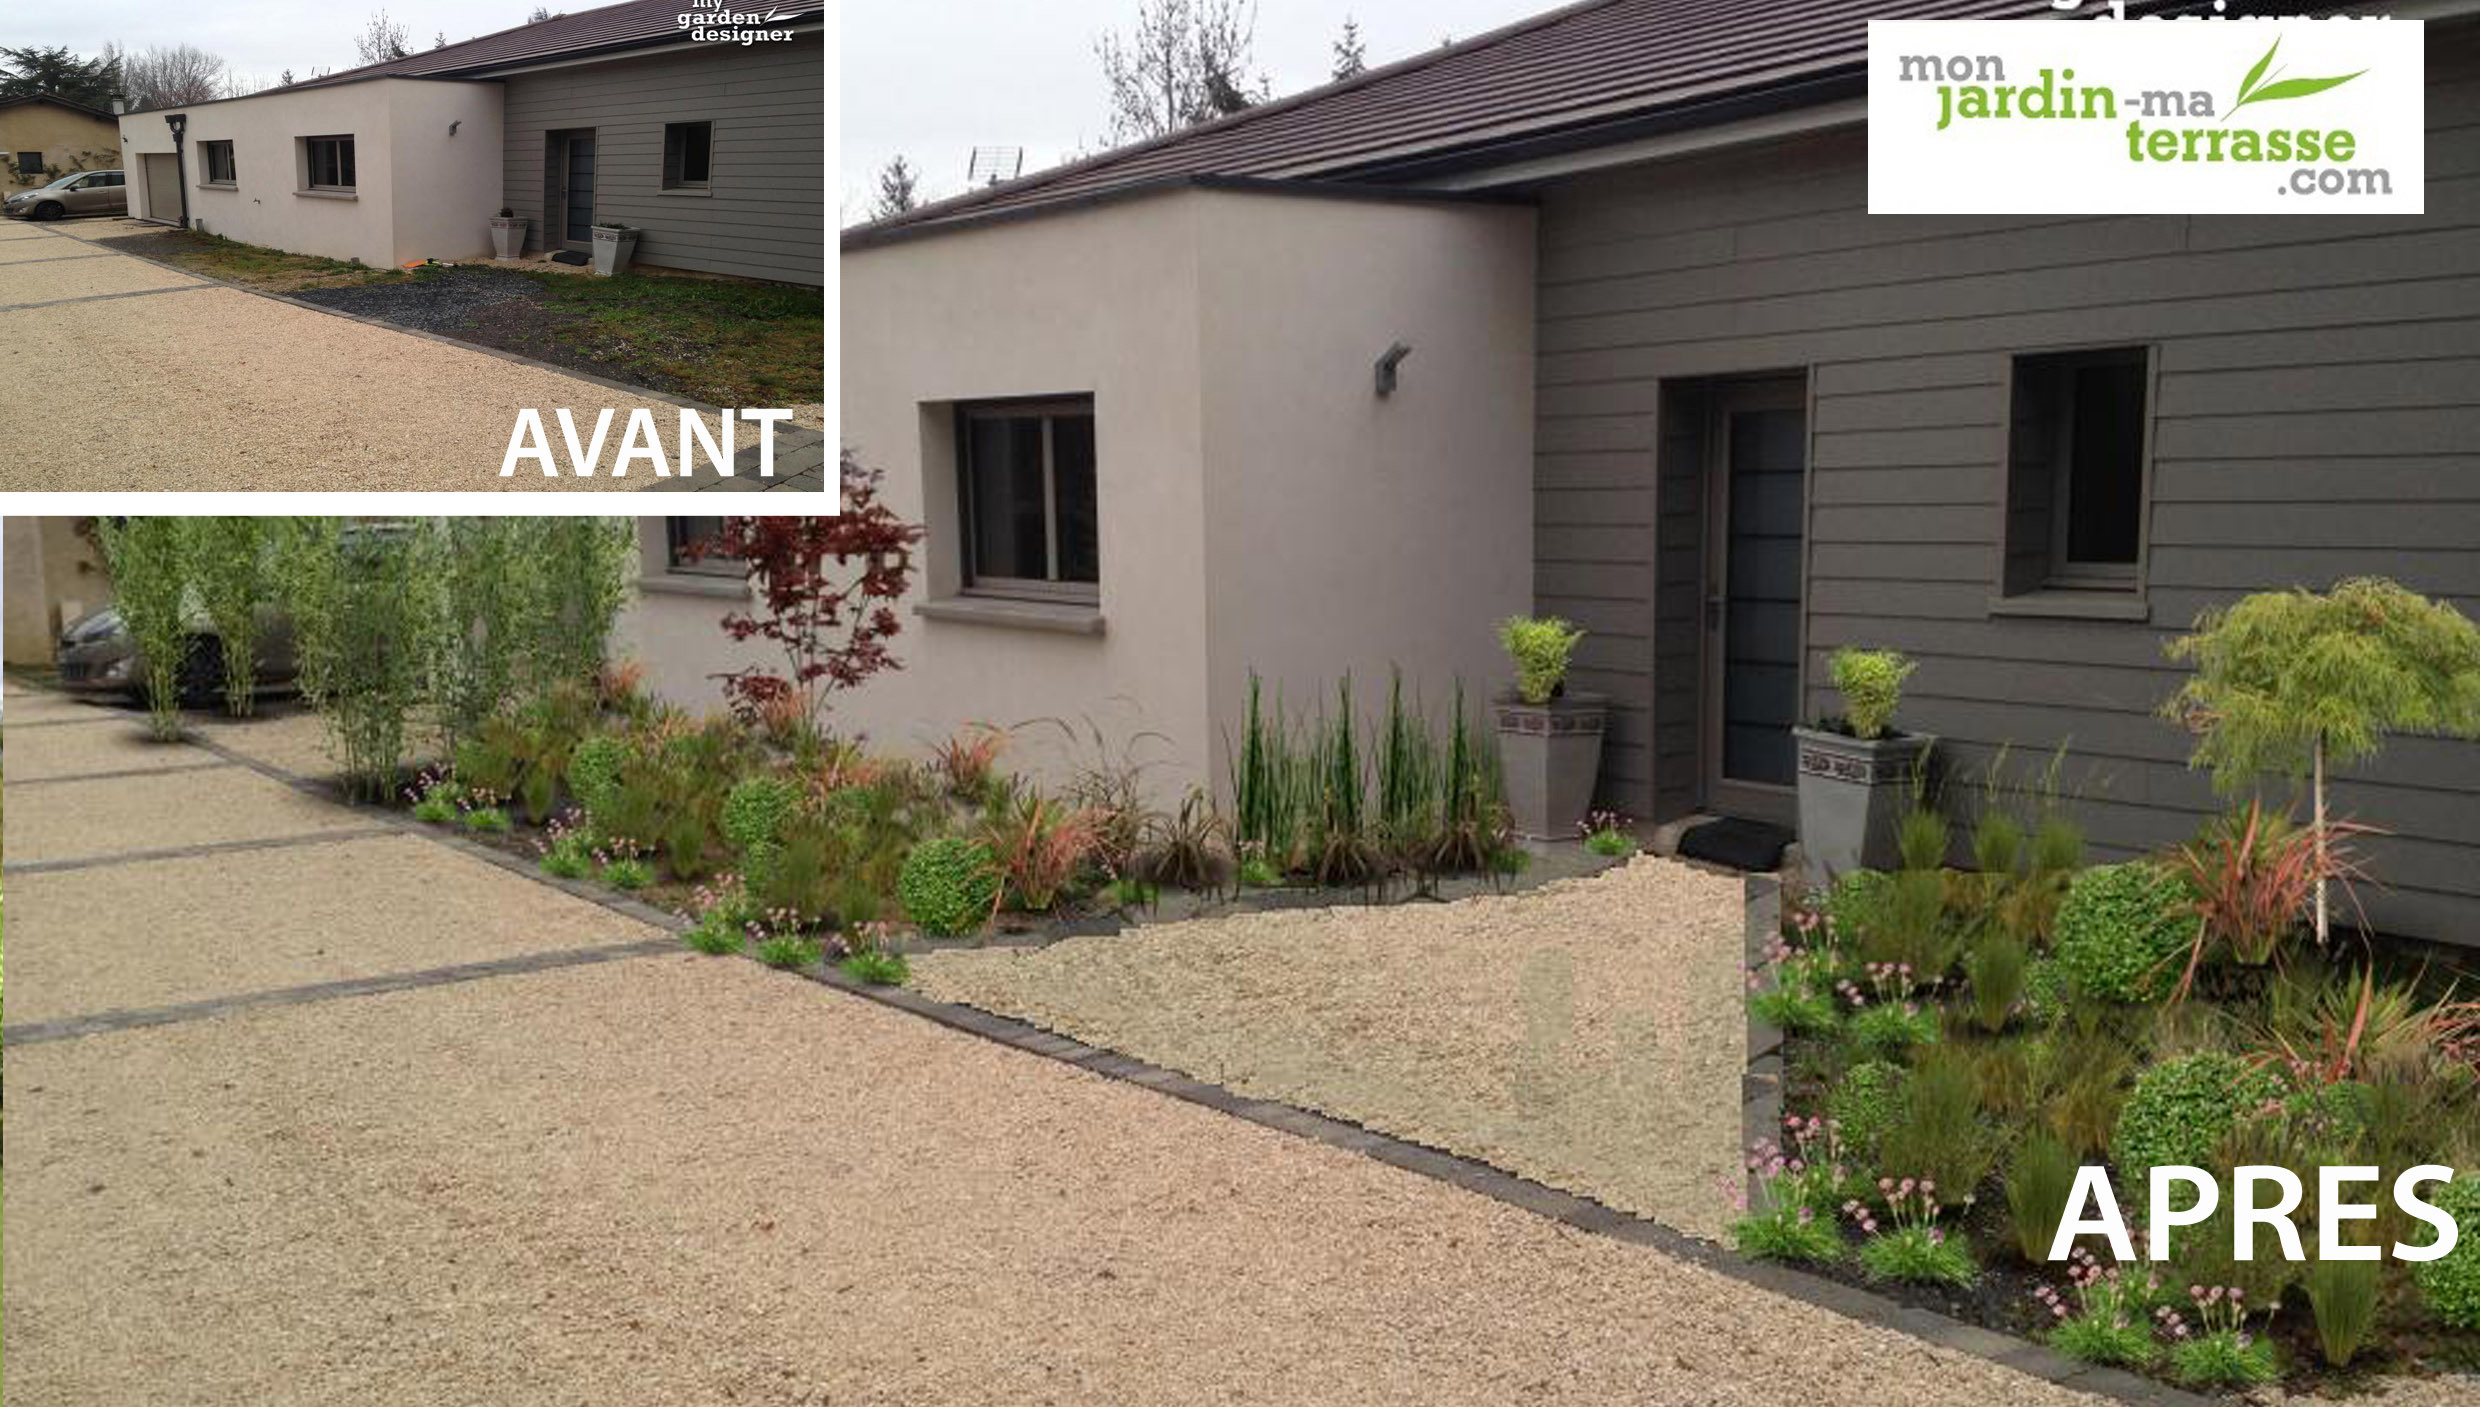 Am nagement du jardin de l entr e d une maison contemporaine monjardin - Amenagement jardin idee ...